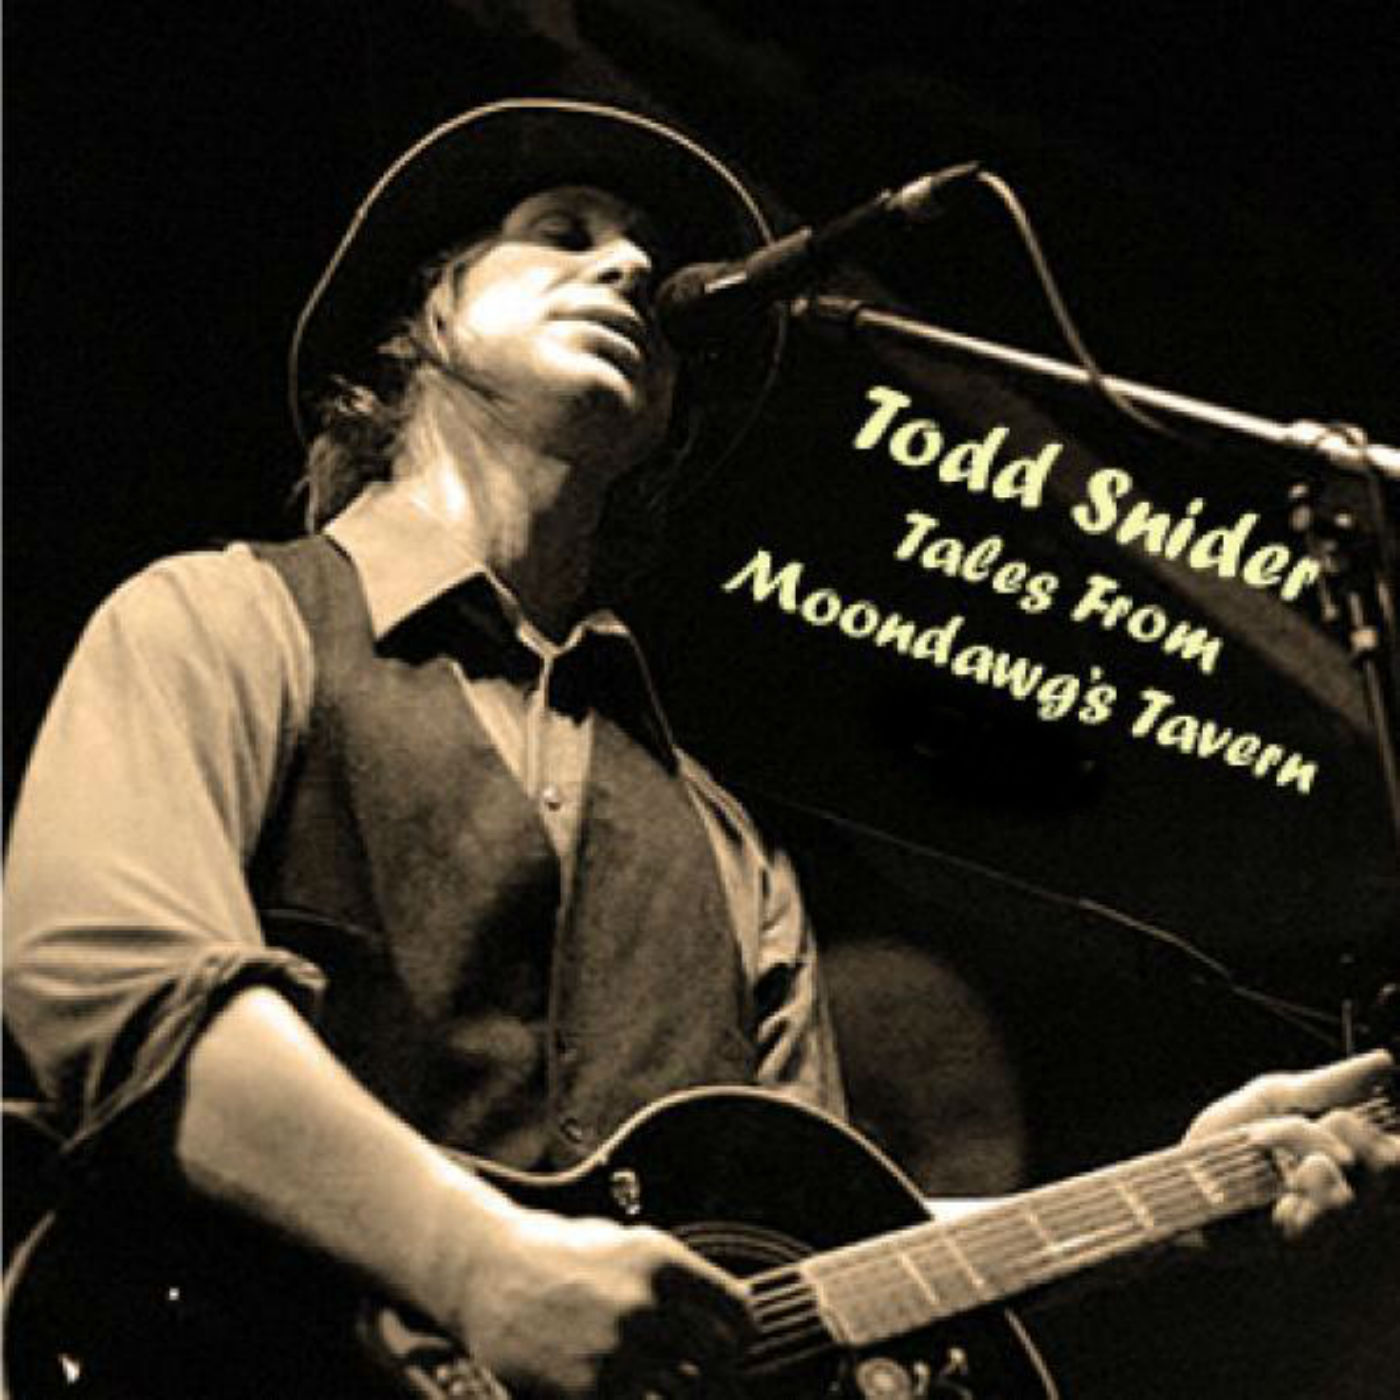 Todd Snider - Tales from Moondawg's Tavern